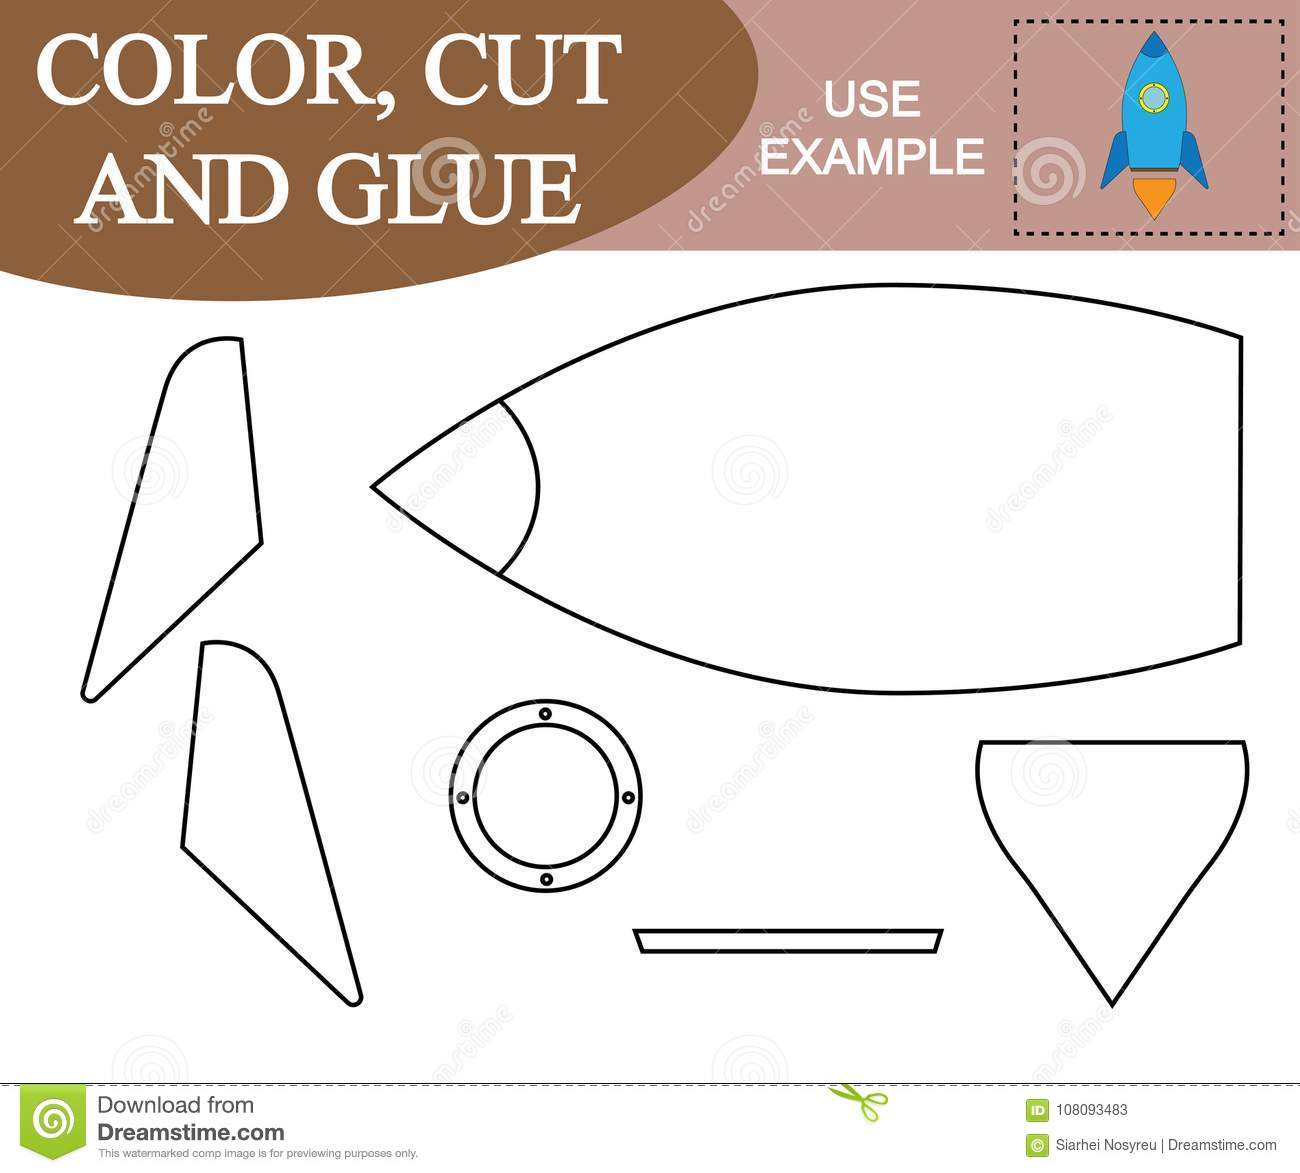 Color Cut And Glue To Create The Image Of Space Rocket